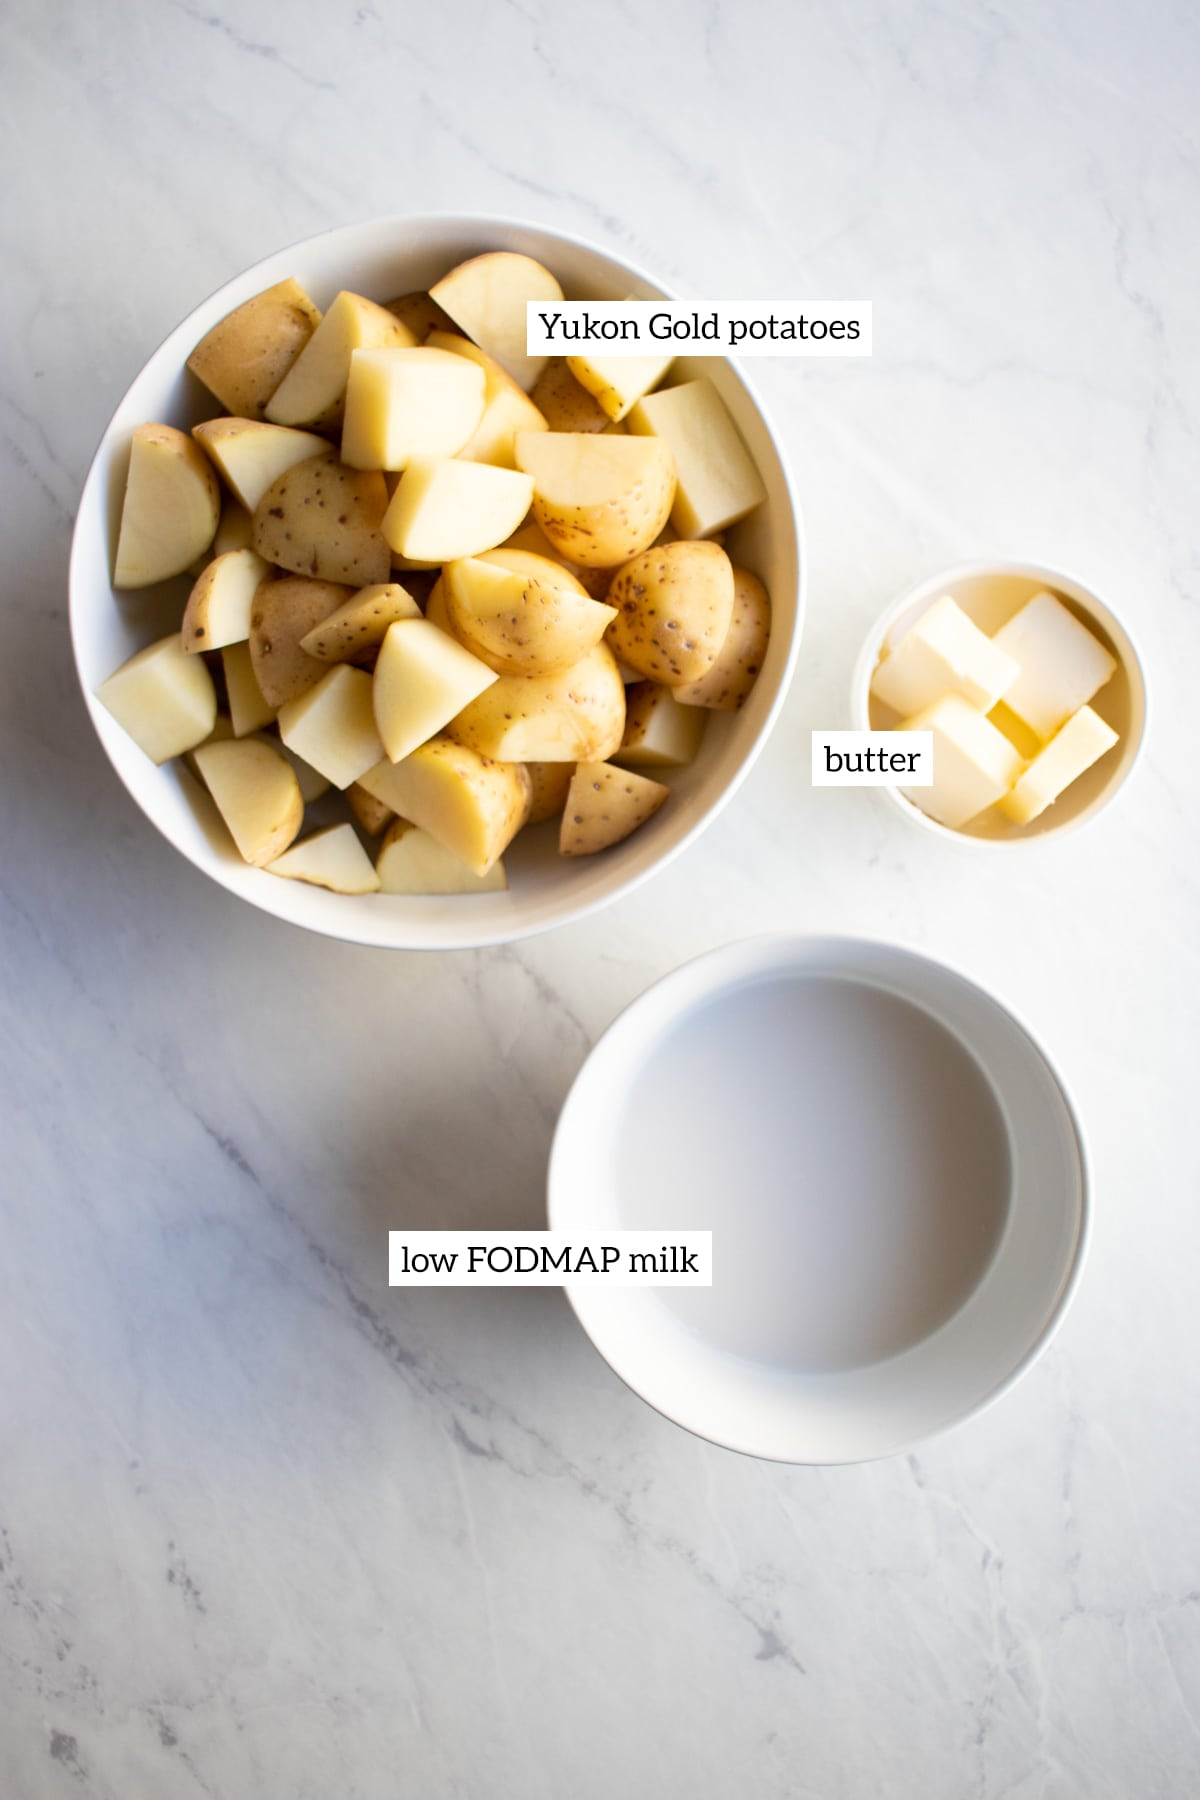 Ingredients needed to make low FODMAP mashed potatoes are measured out into individual dishes.